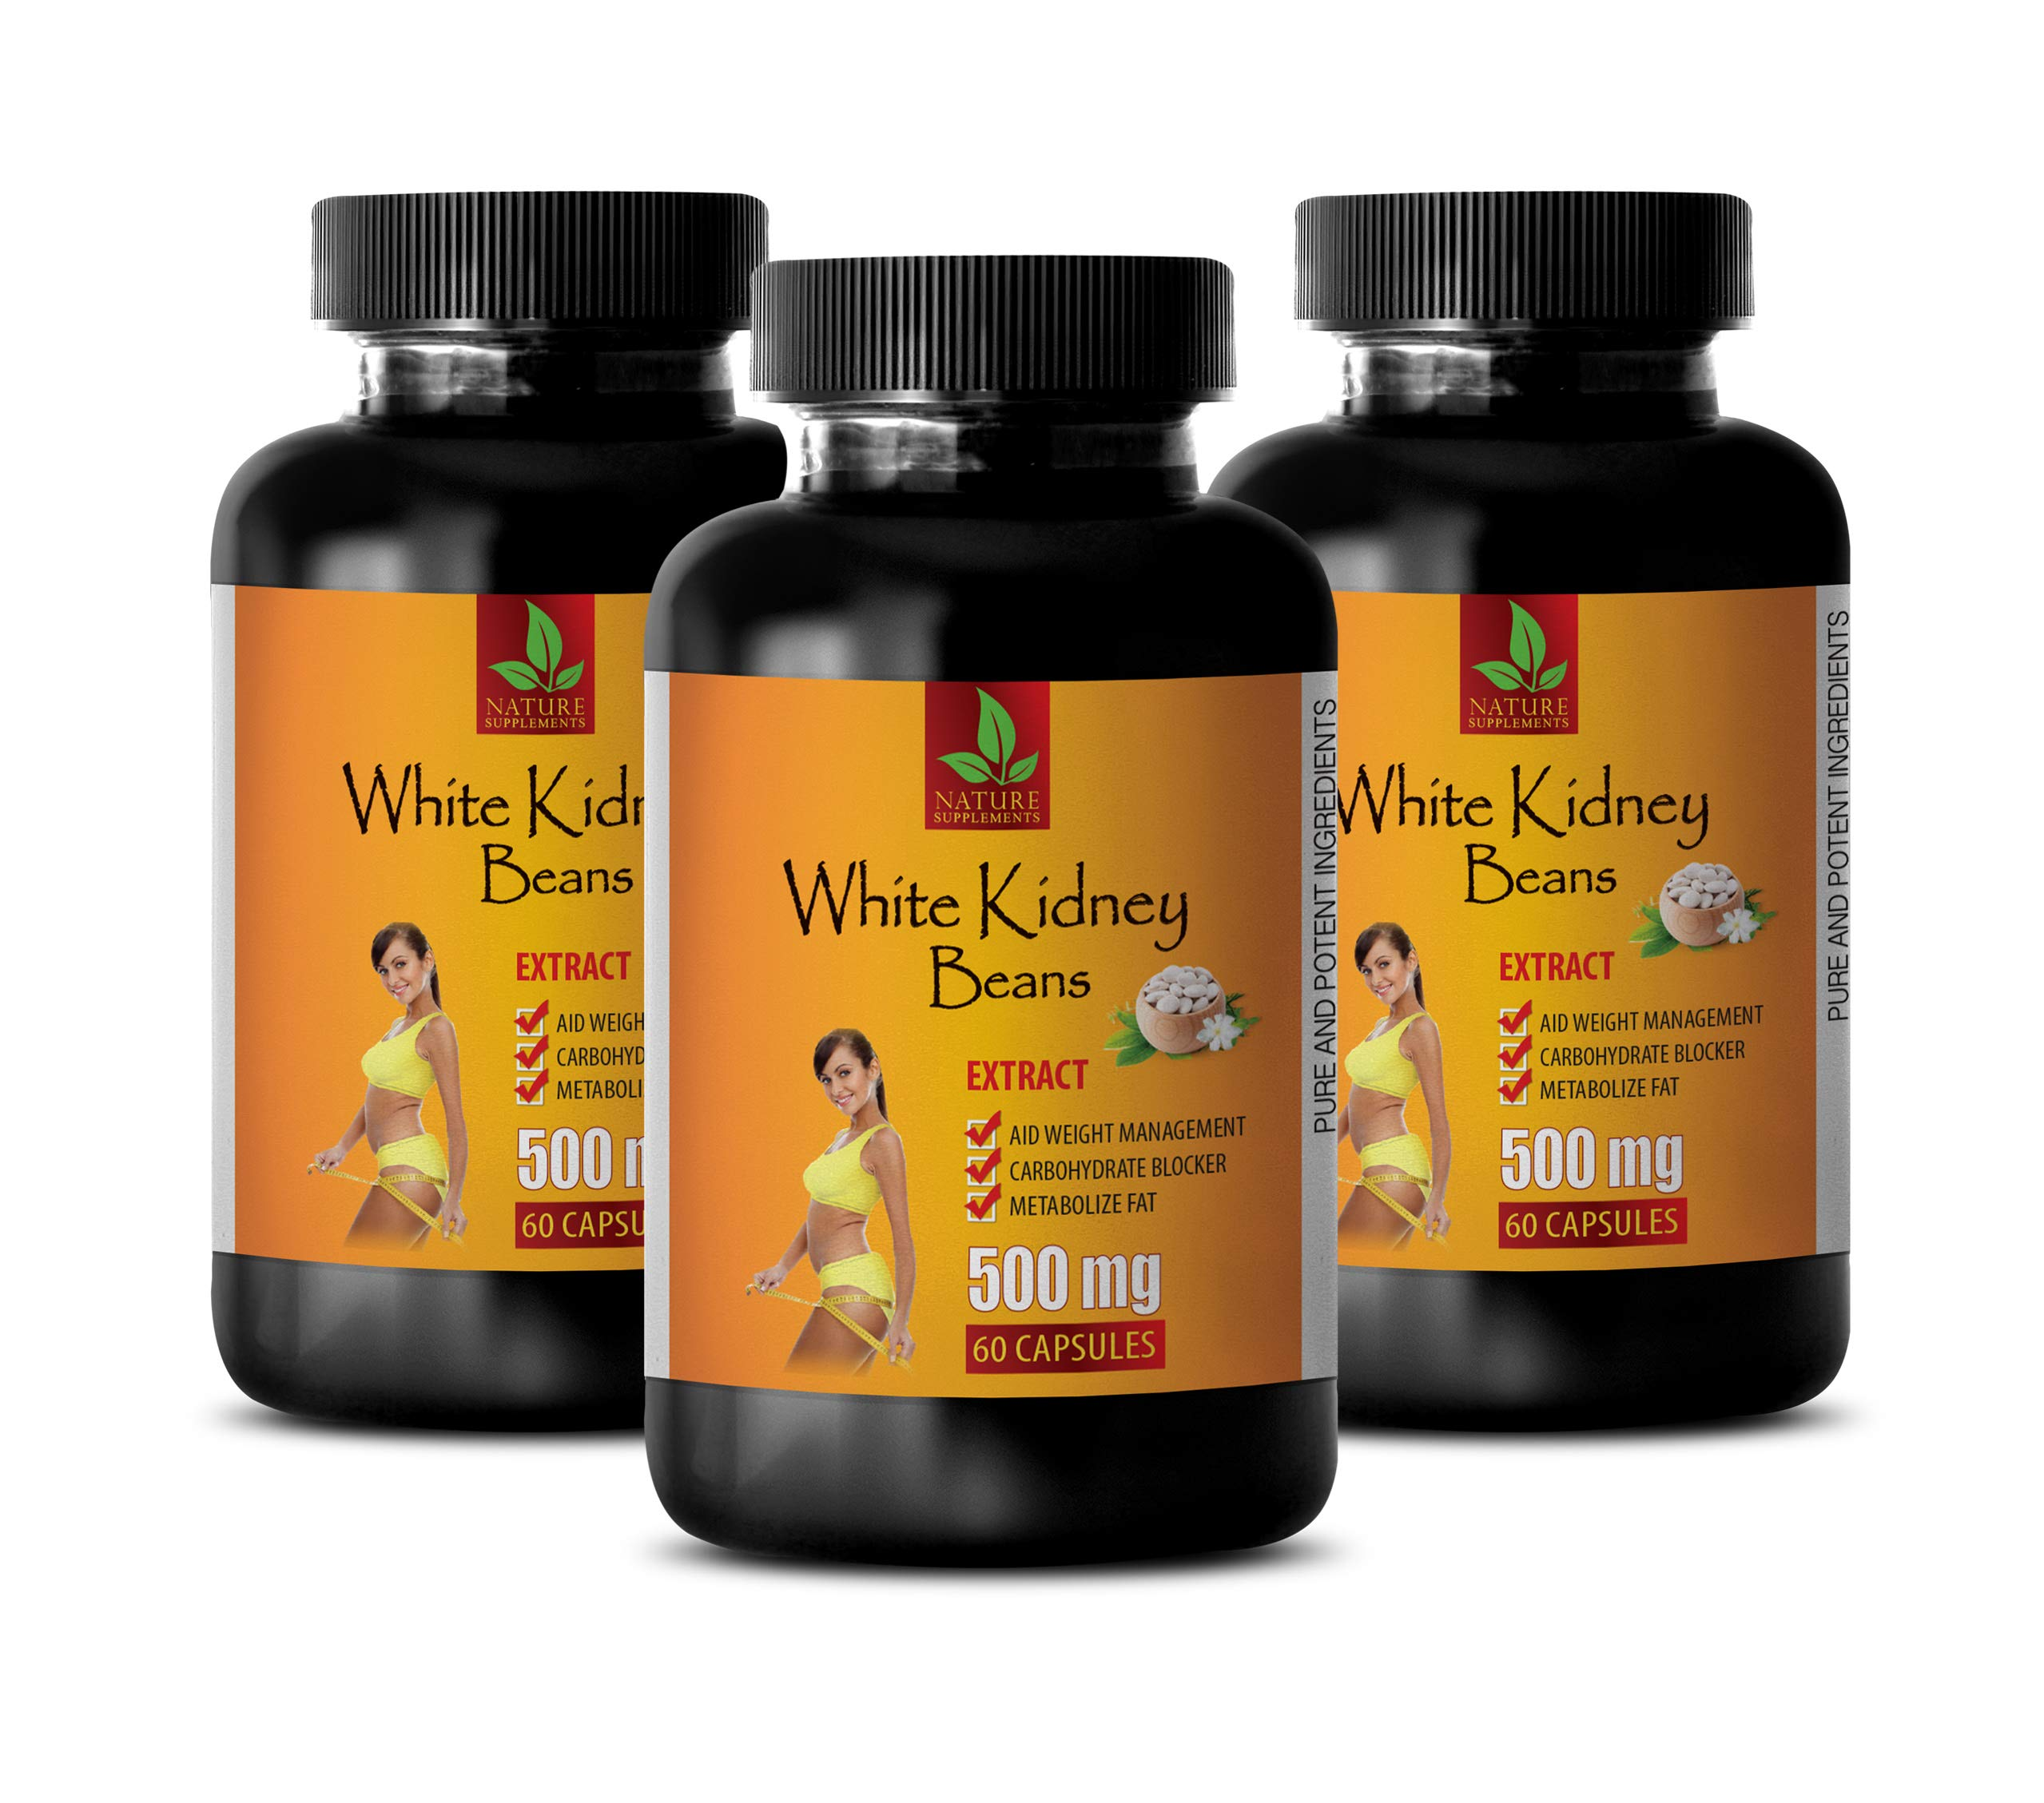 carb blockers Weight Loss and Fat Blocker - White Kidney Beans Extract 500MG - Pure and Potent Ingredients - Weight Loss Natural Pills - 3 Bottles (180 Capsules)